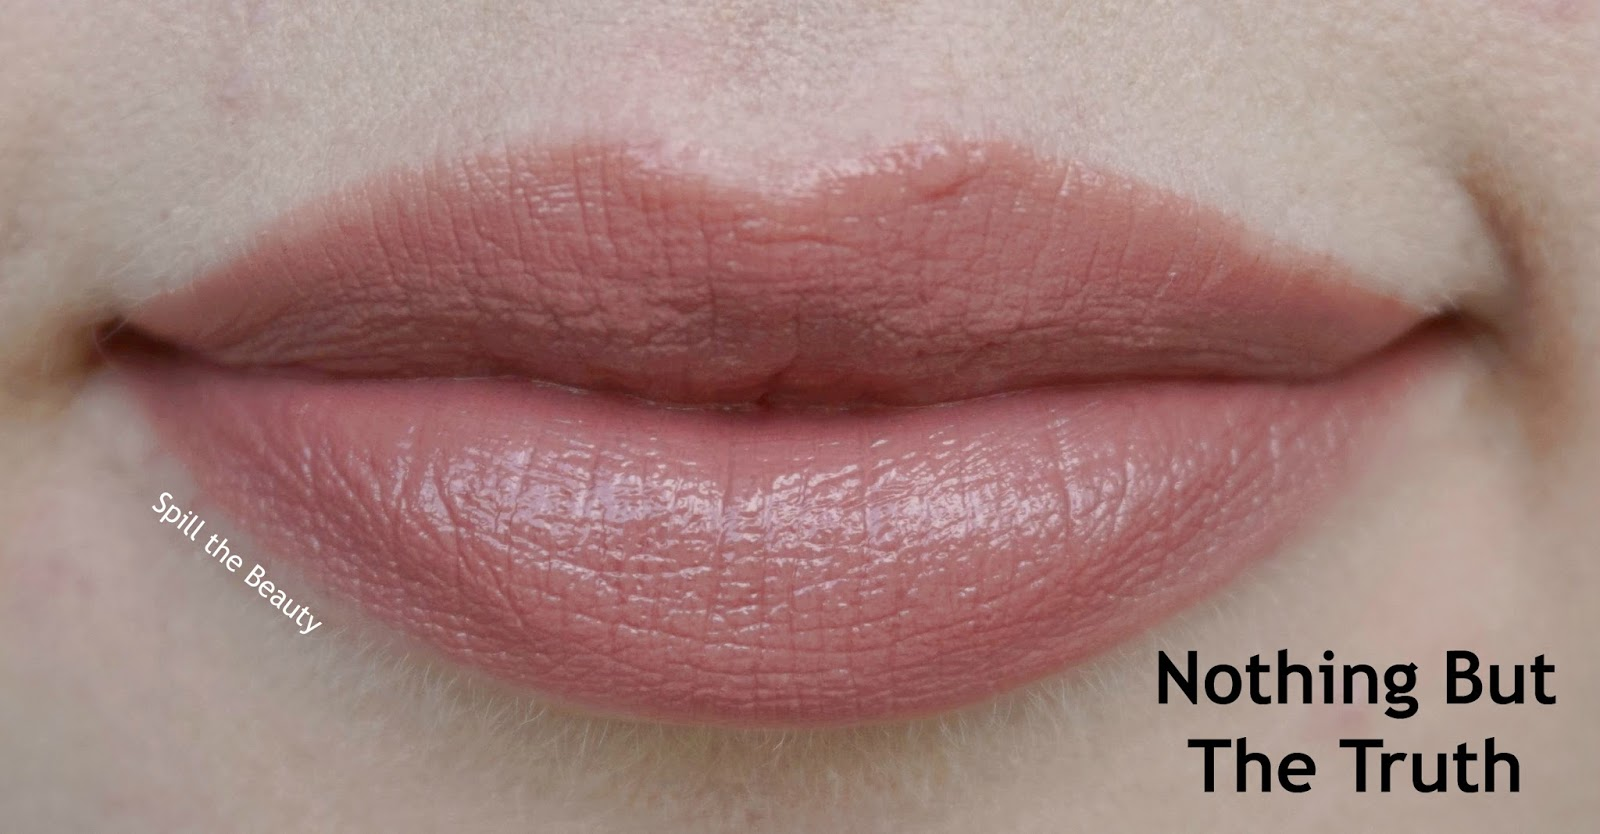 lipstick queen nothing but the nudes the truth the whole truth nothing but the truth review swatches giveaway nothing but the truth - lips